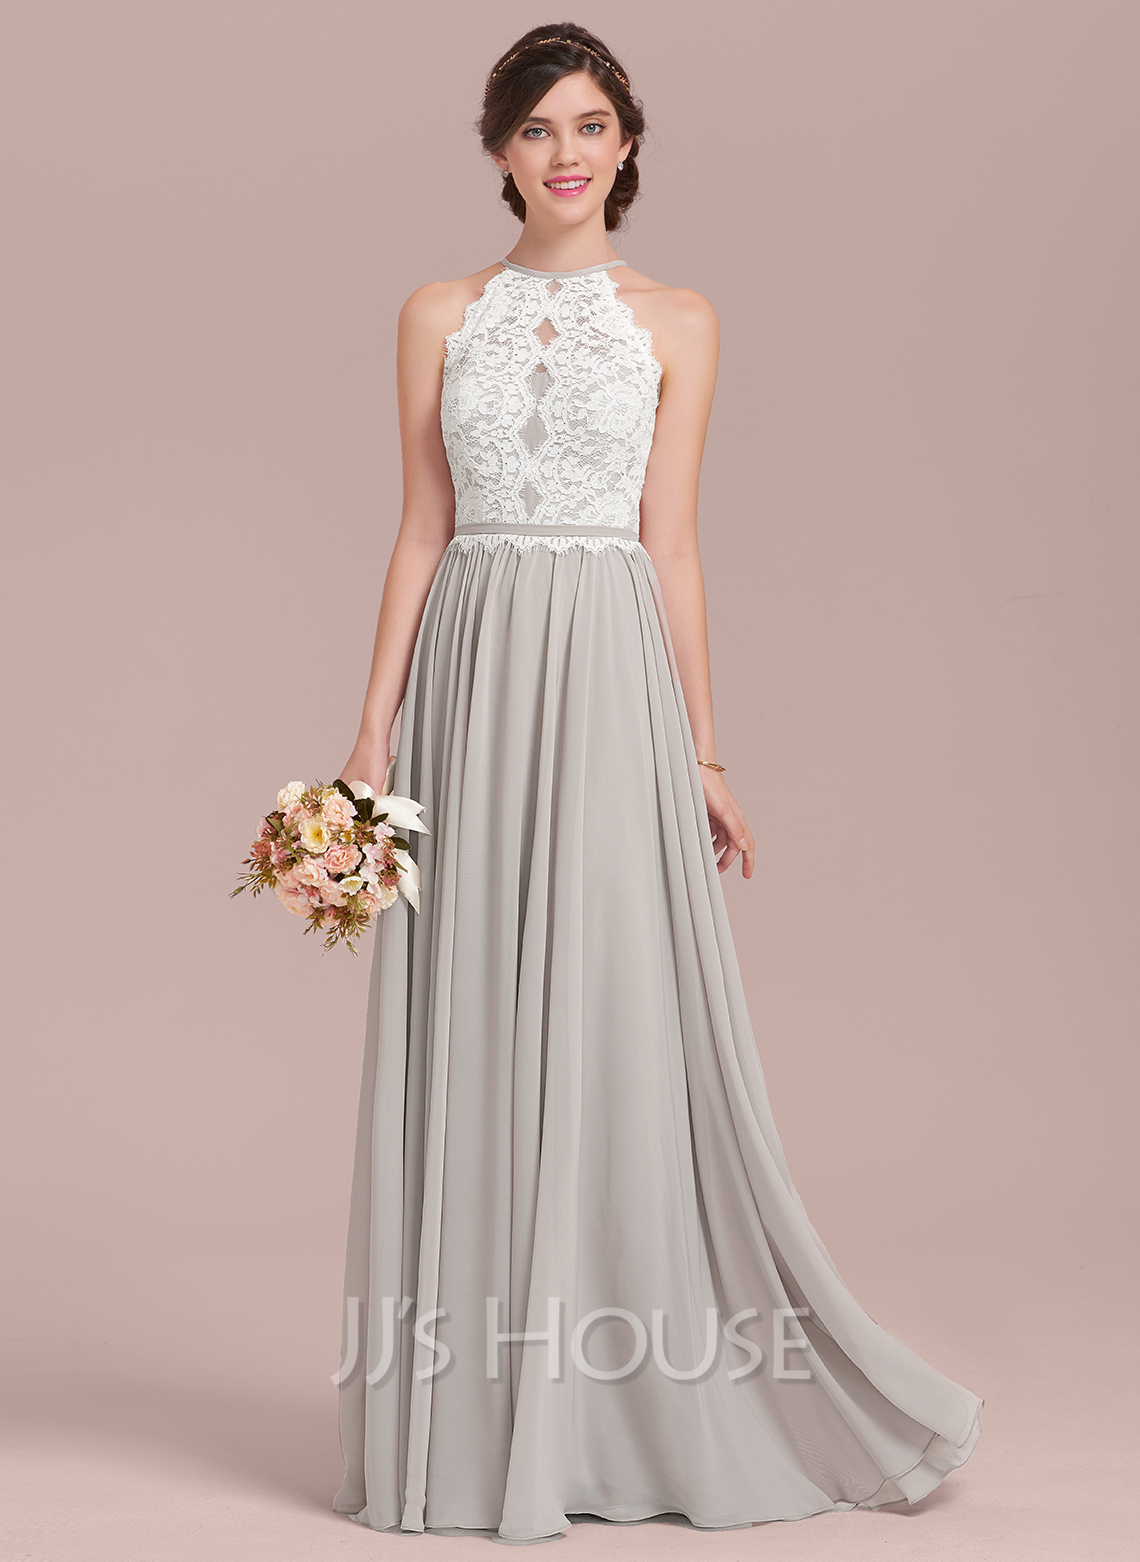 4a680ff6add A-Line Scoop Neck Floor-Length Chiffon Lace Bridesmaid Dress. Loading zoom